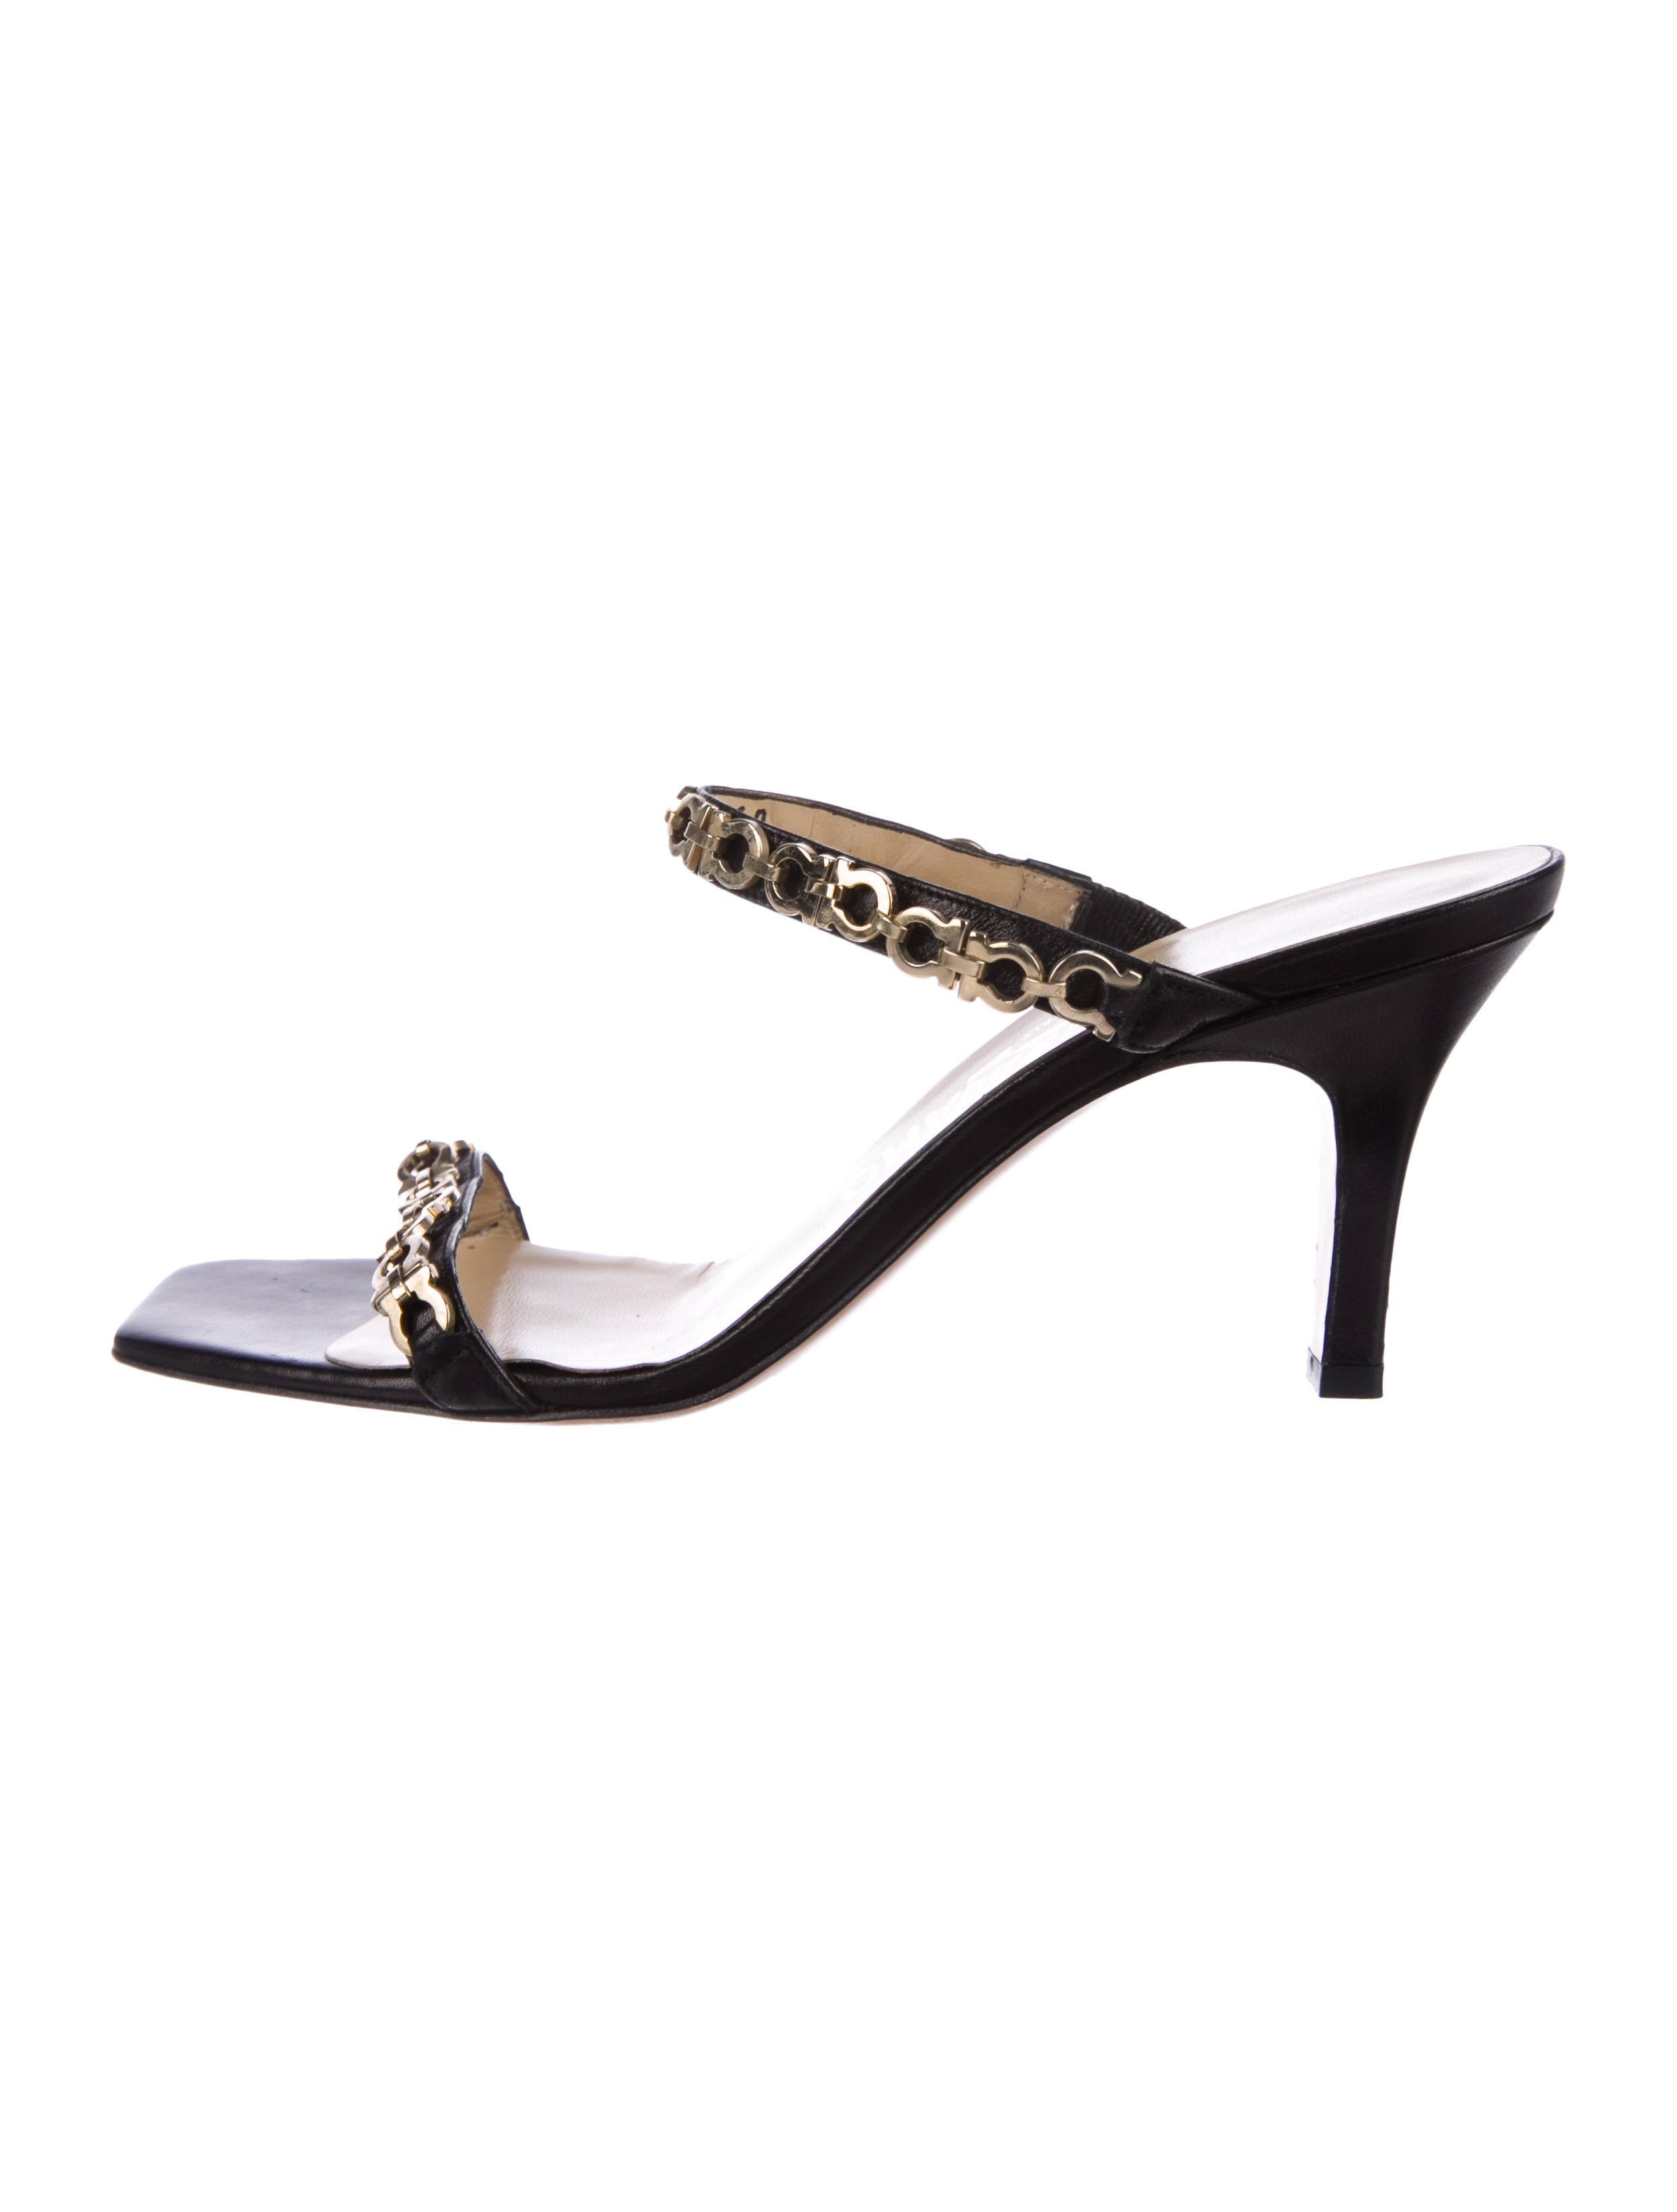 free shipping amazing price Salvatore Ferragamo Chain-Link Slide Sandals pictures cheap online discount countdown package fF4ma